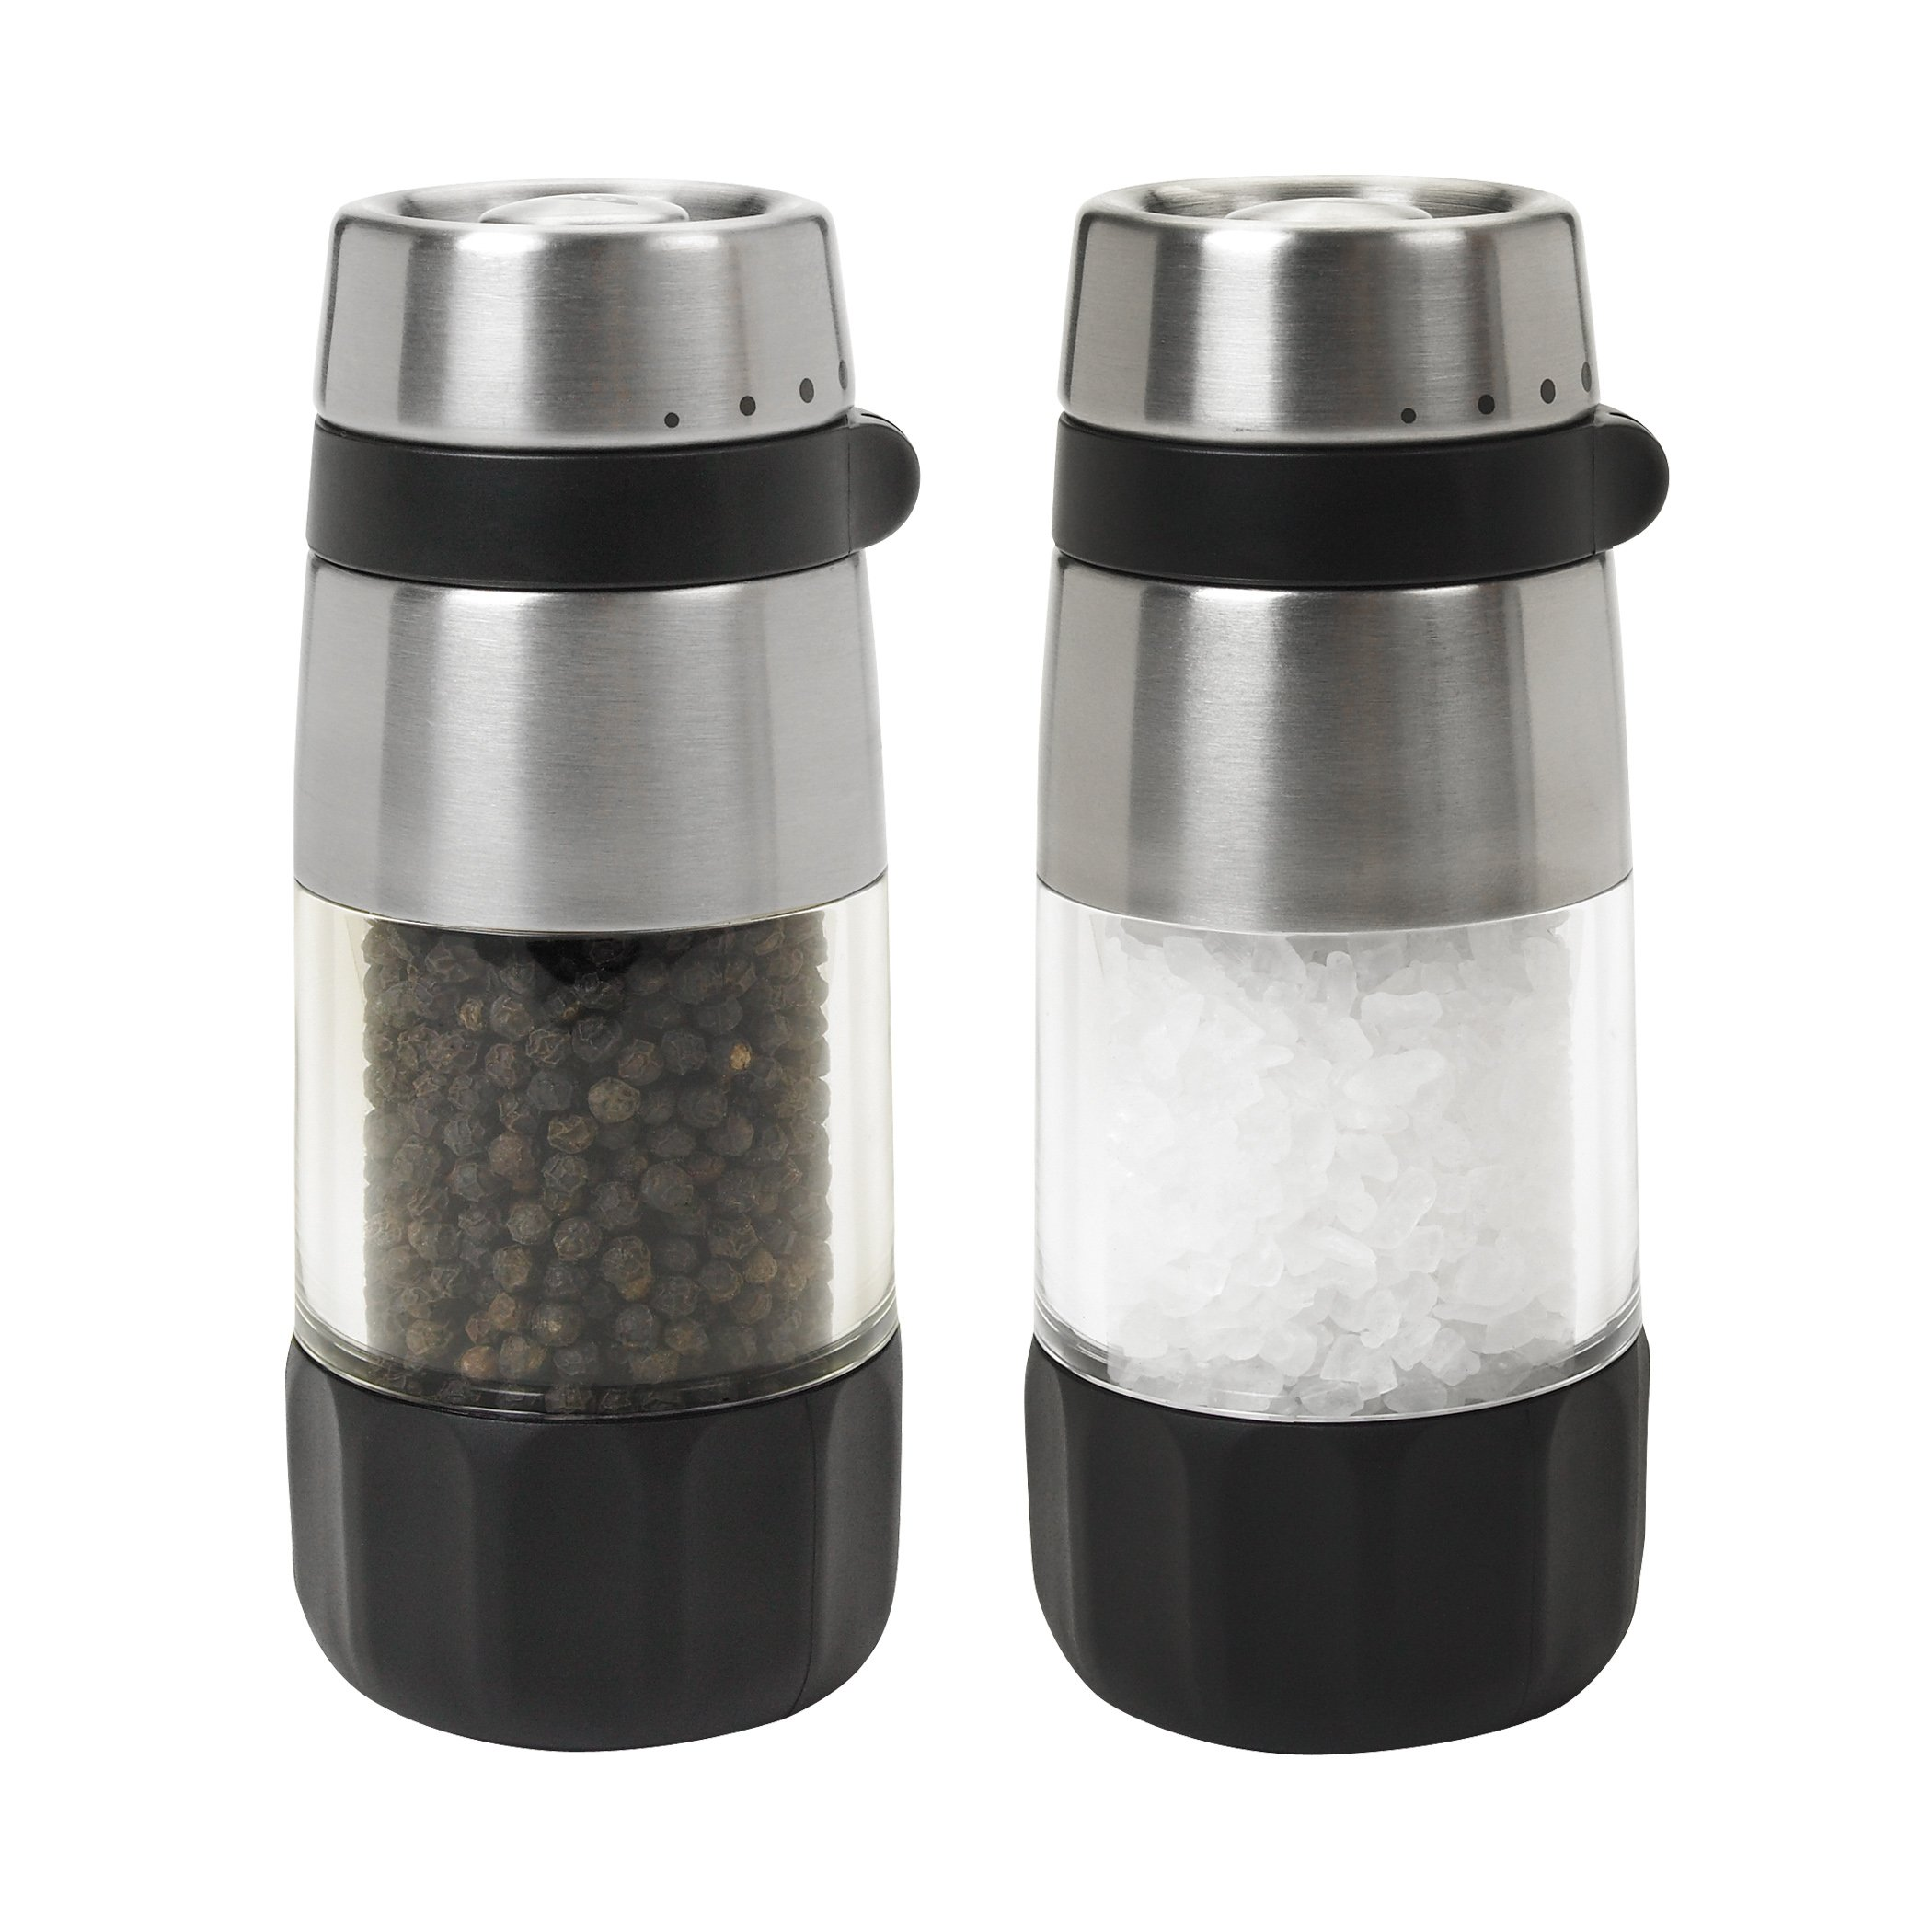 OXO Salt and Pepper Grinder Set, Stainless Steel by OXO